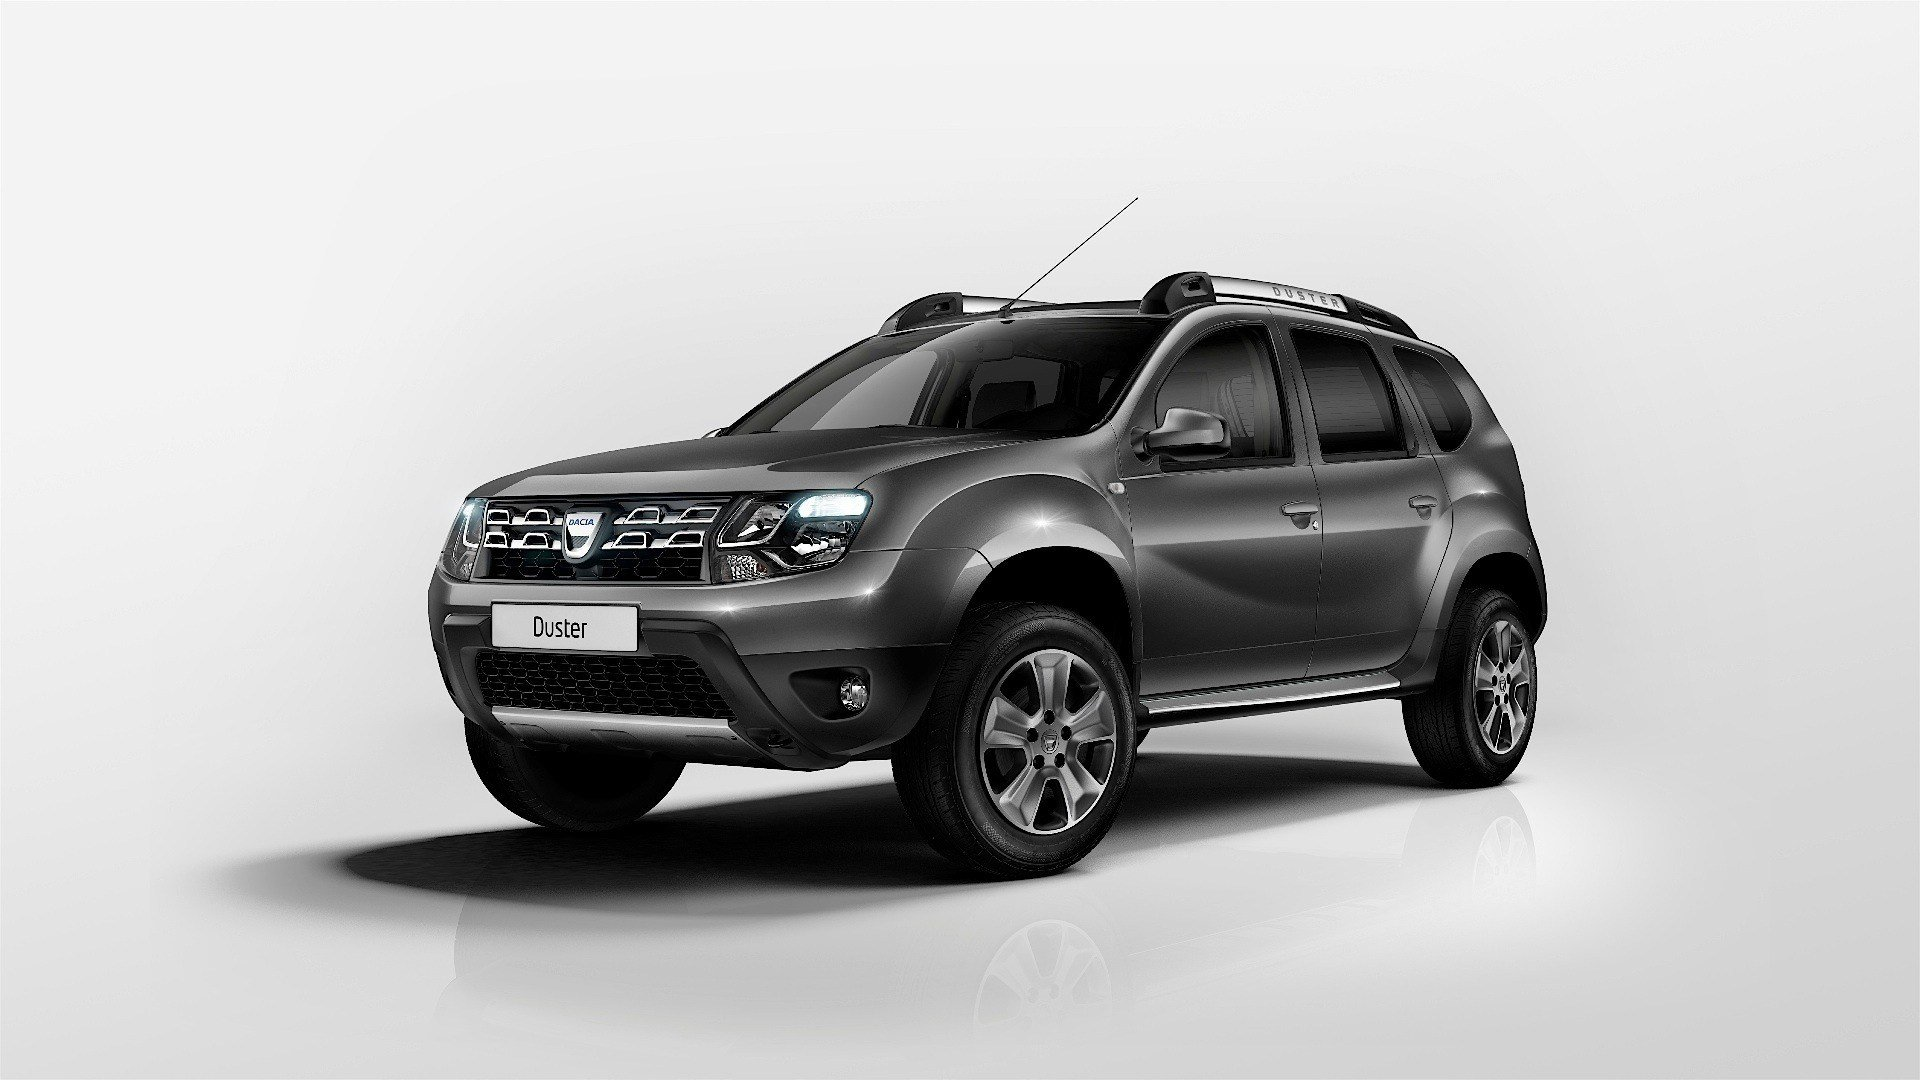 Latest Dacia Duster Specs Photos 2013 2014 2015 2016 2017 Free Download